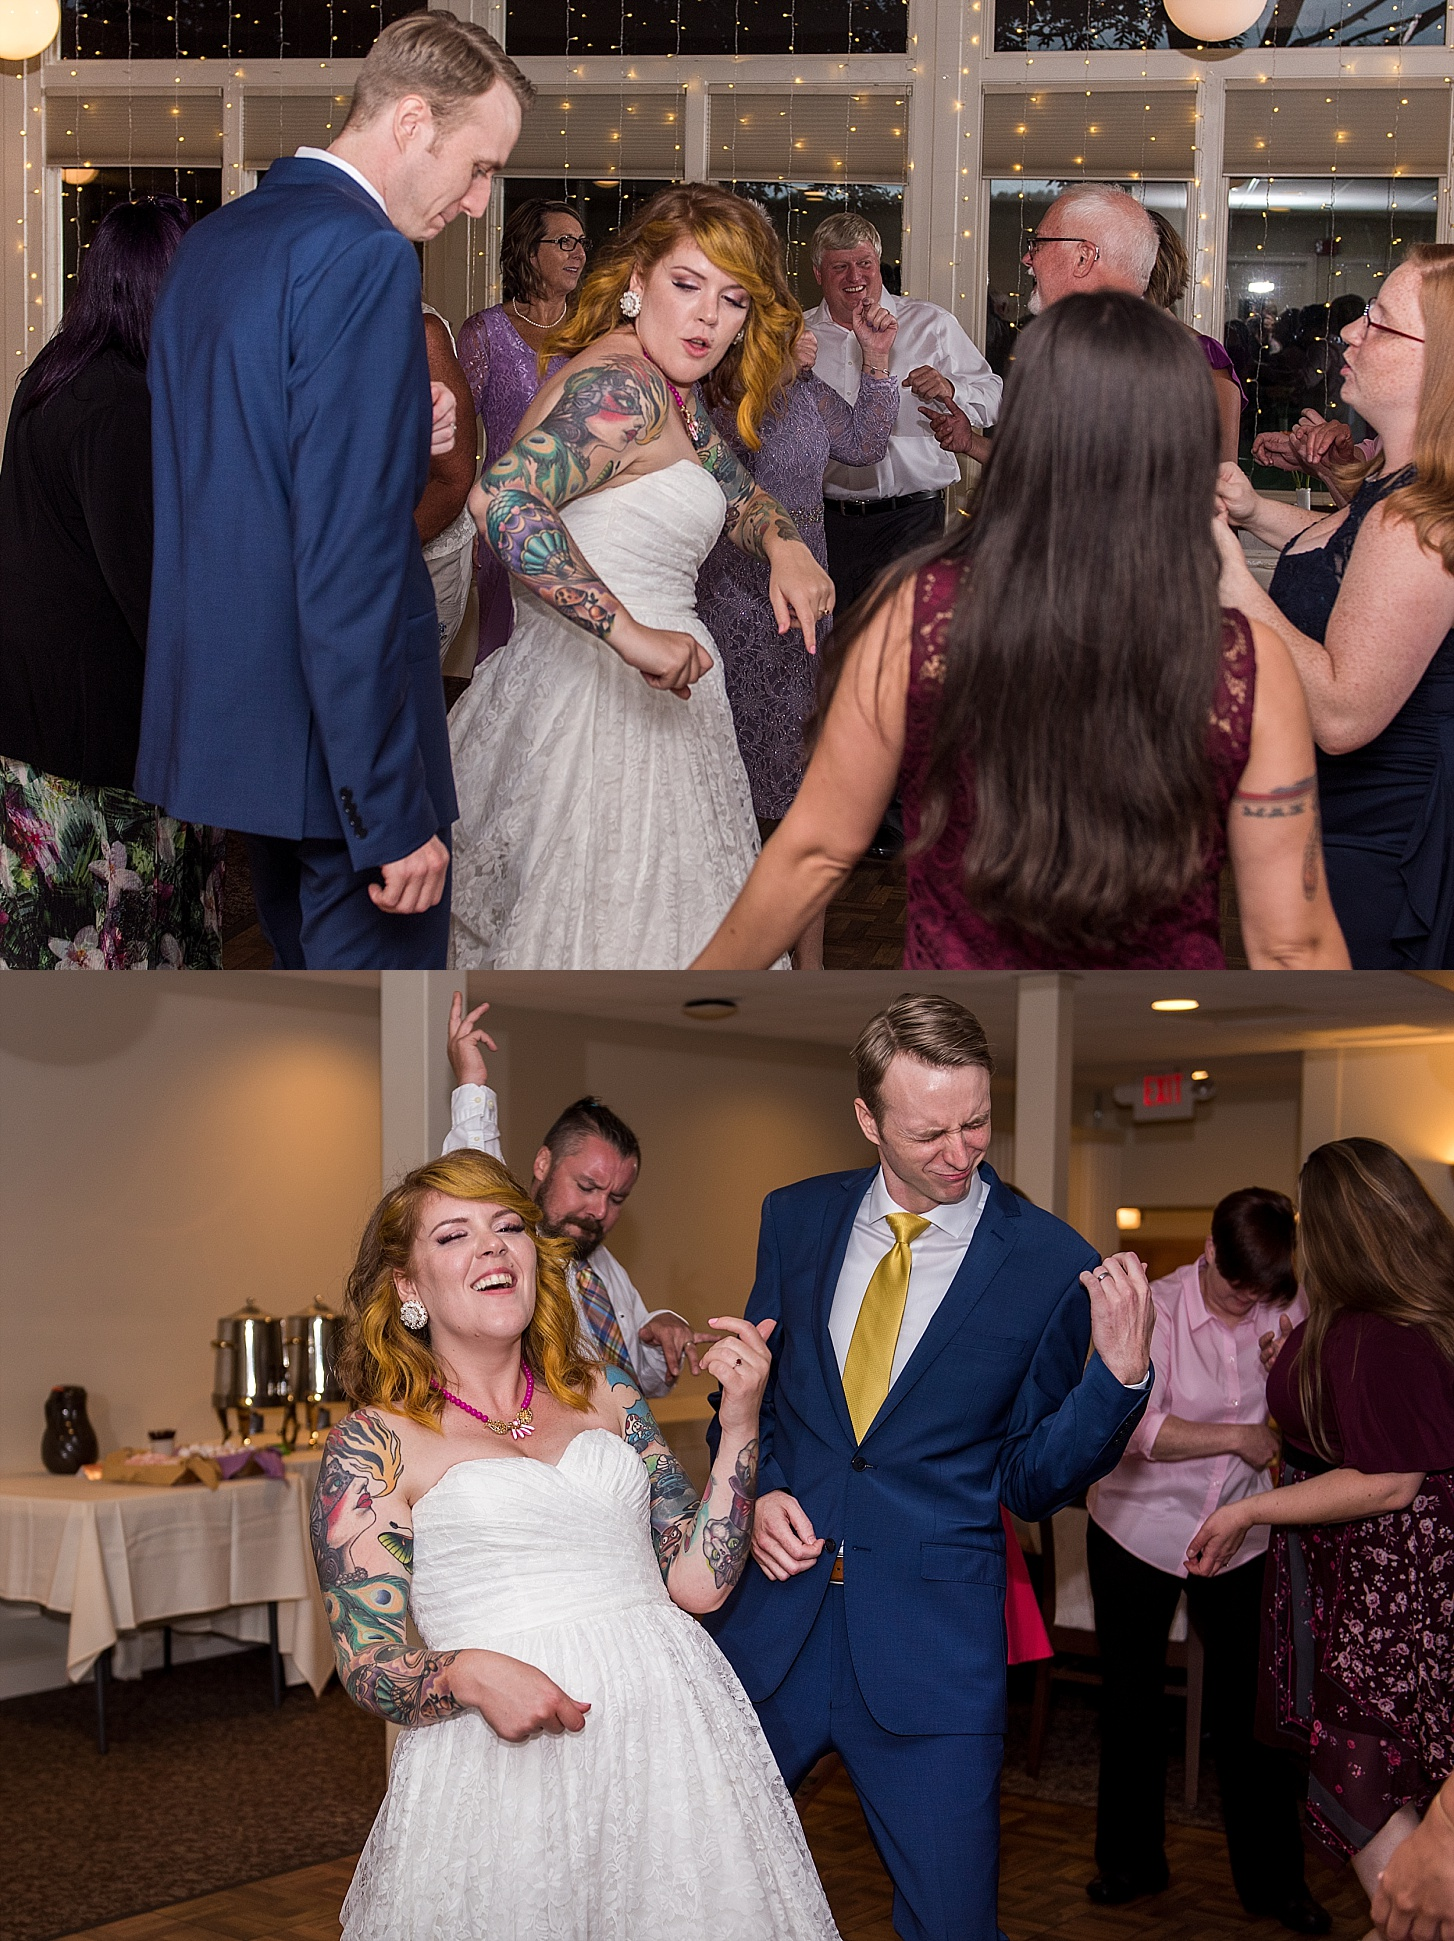 candid wedding photographer located in hartford county, connecticut